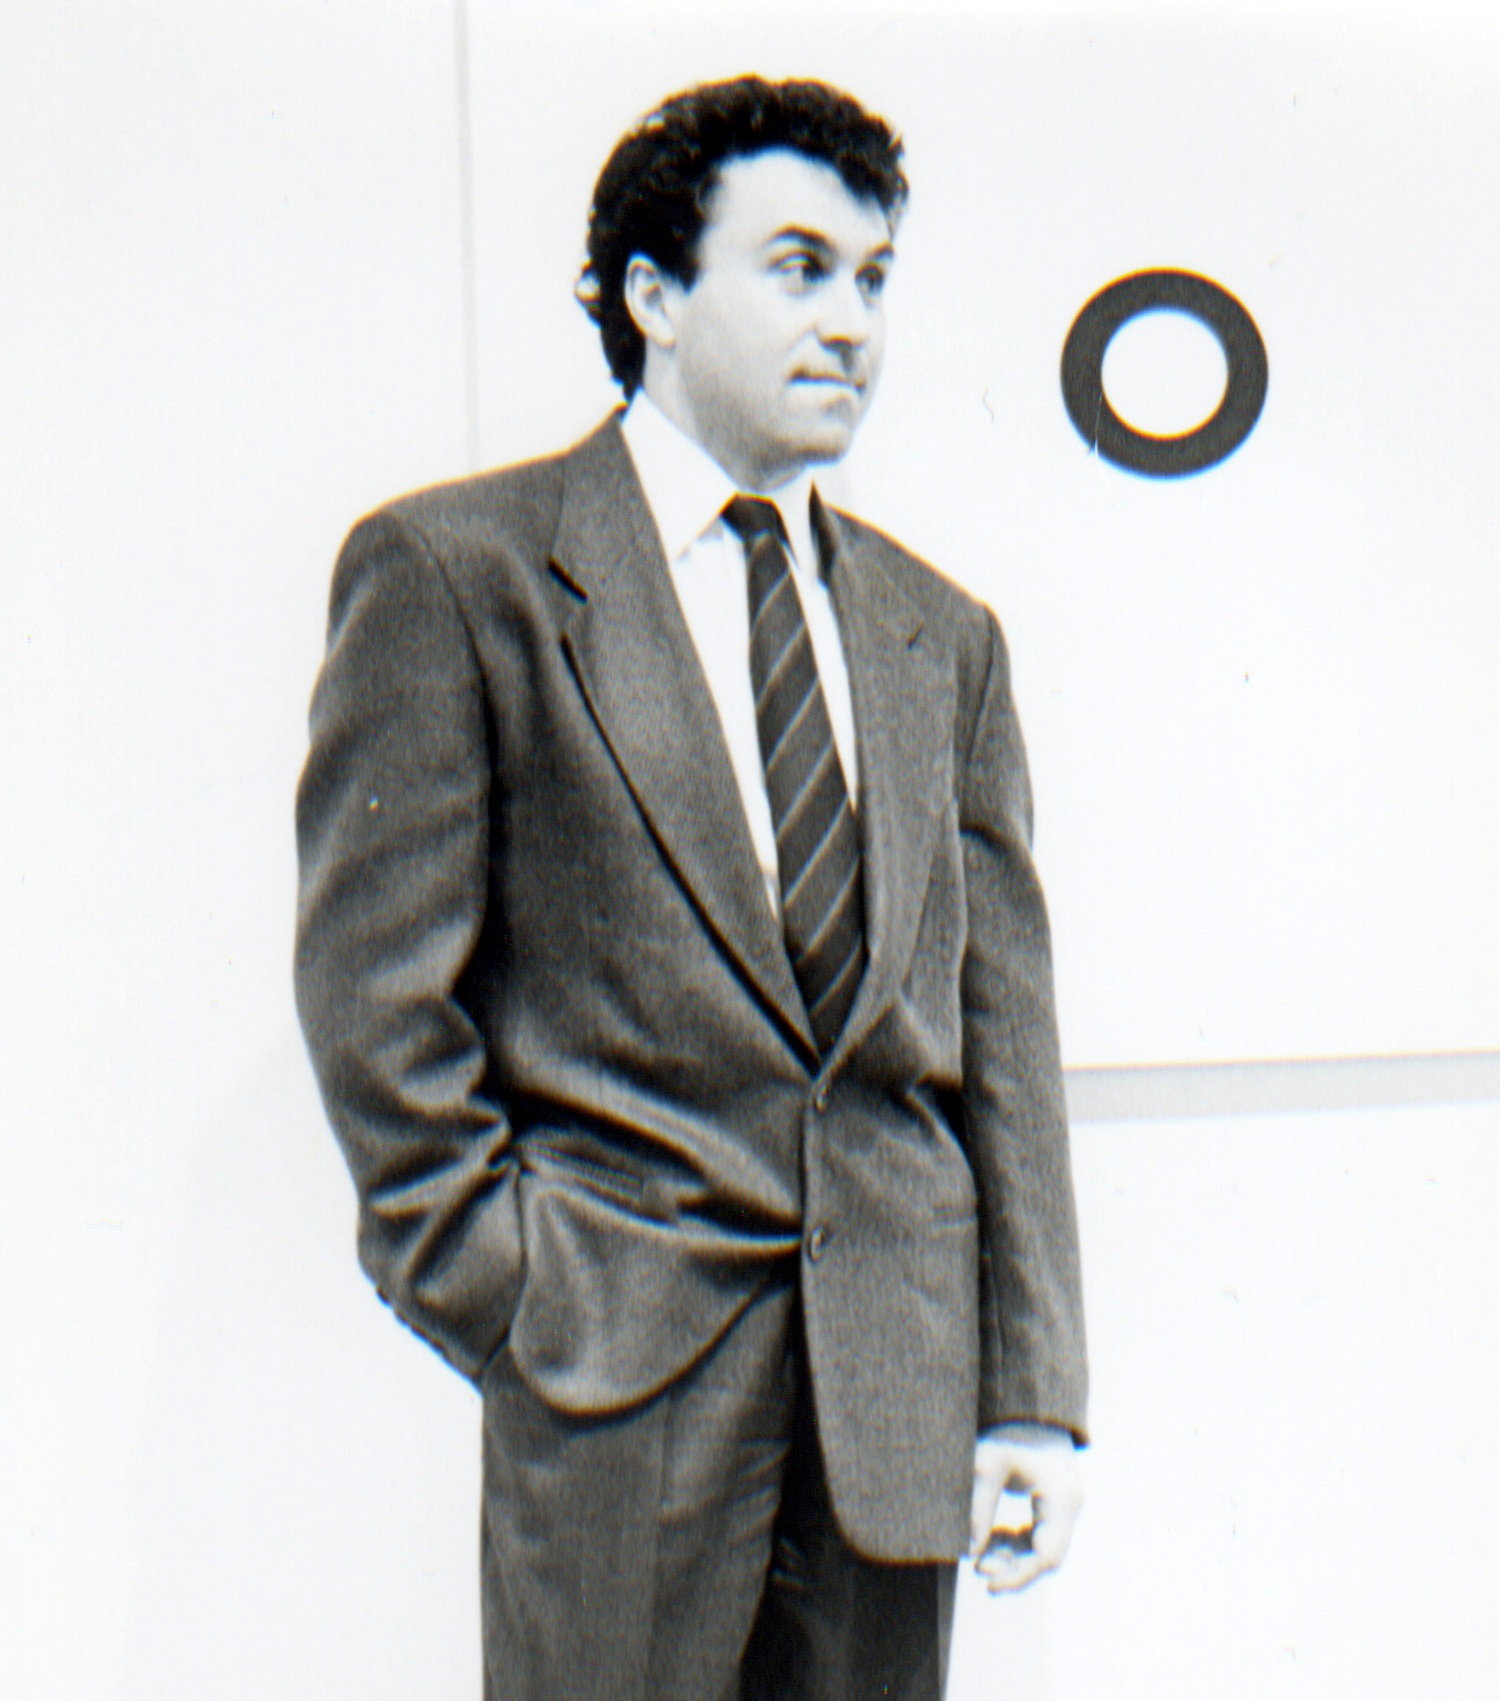 Louis Grachos, director of exhibitions, c. 1990